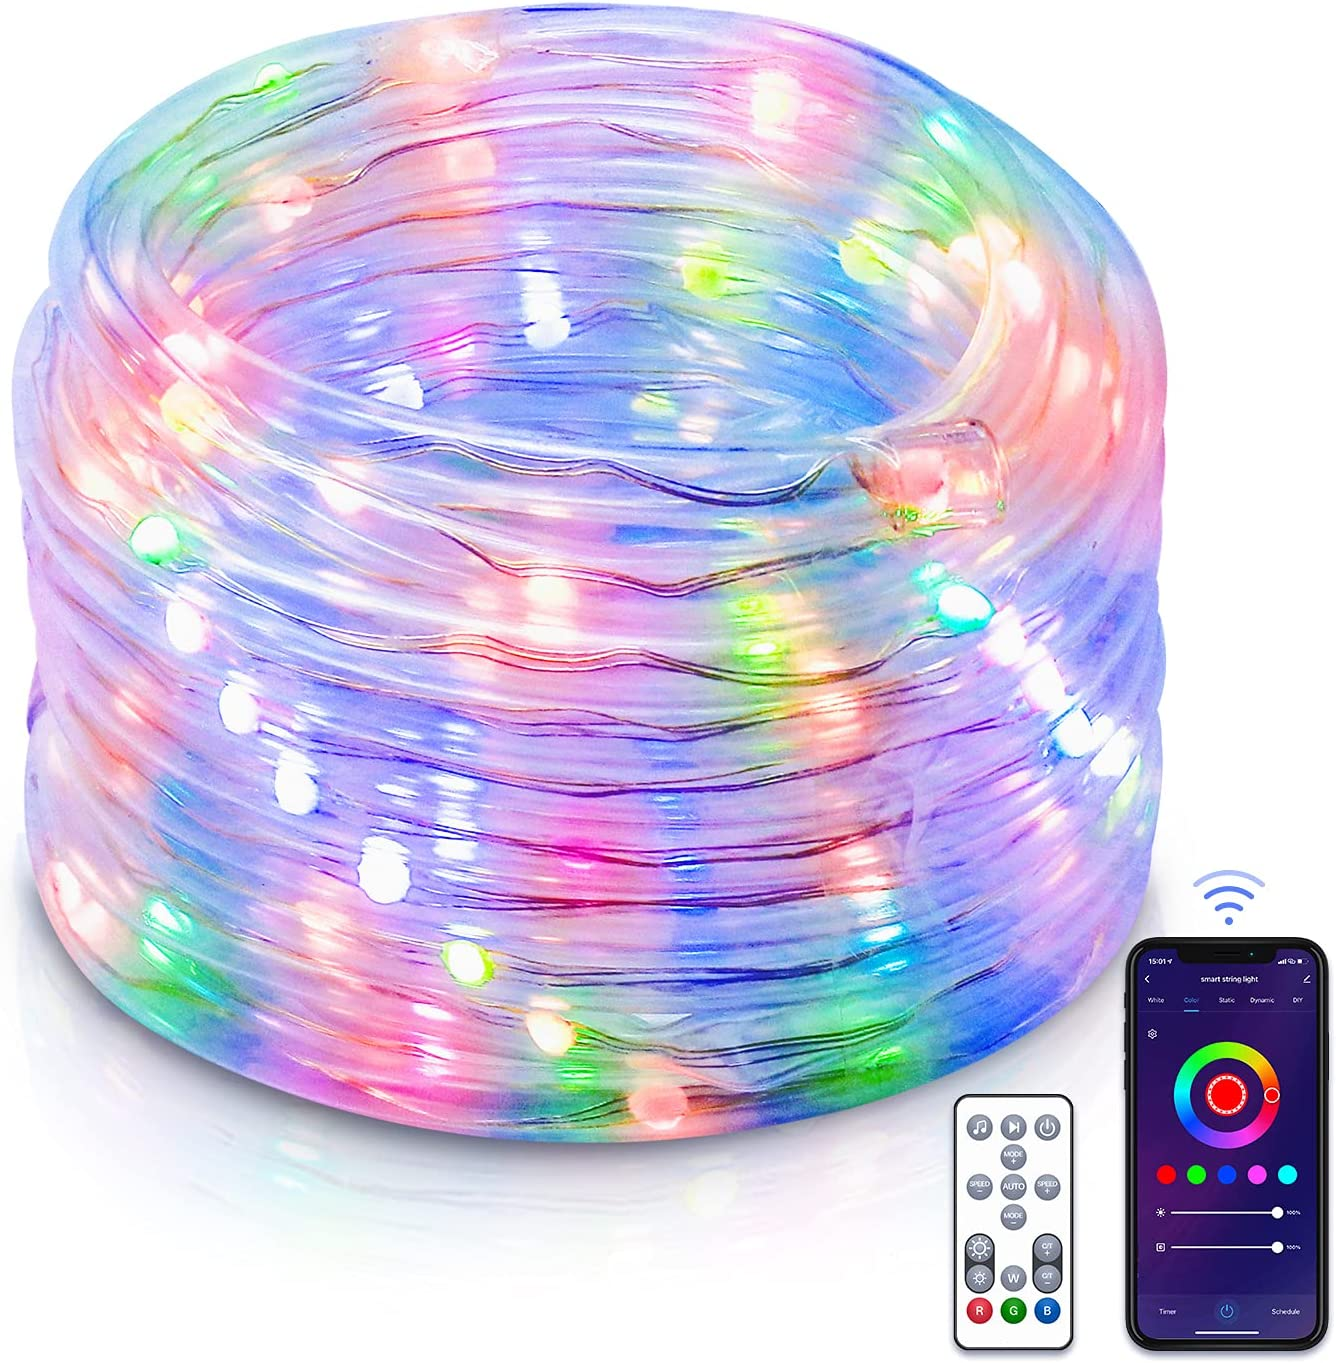 Smart WiFi Rope Lights, Peteme 33ft 100 Led RGB Color Changing Music Sync Outdoor Waterproof String Lights, Compatible with Alexa, Google Home, Voice Control Led Rope Lights